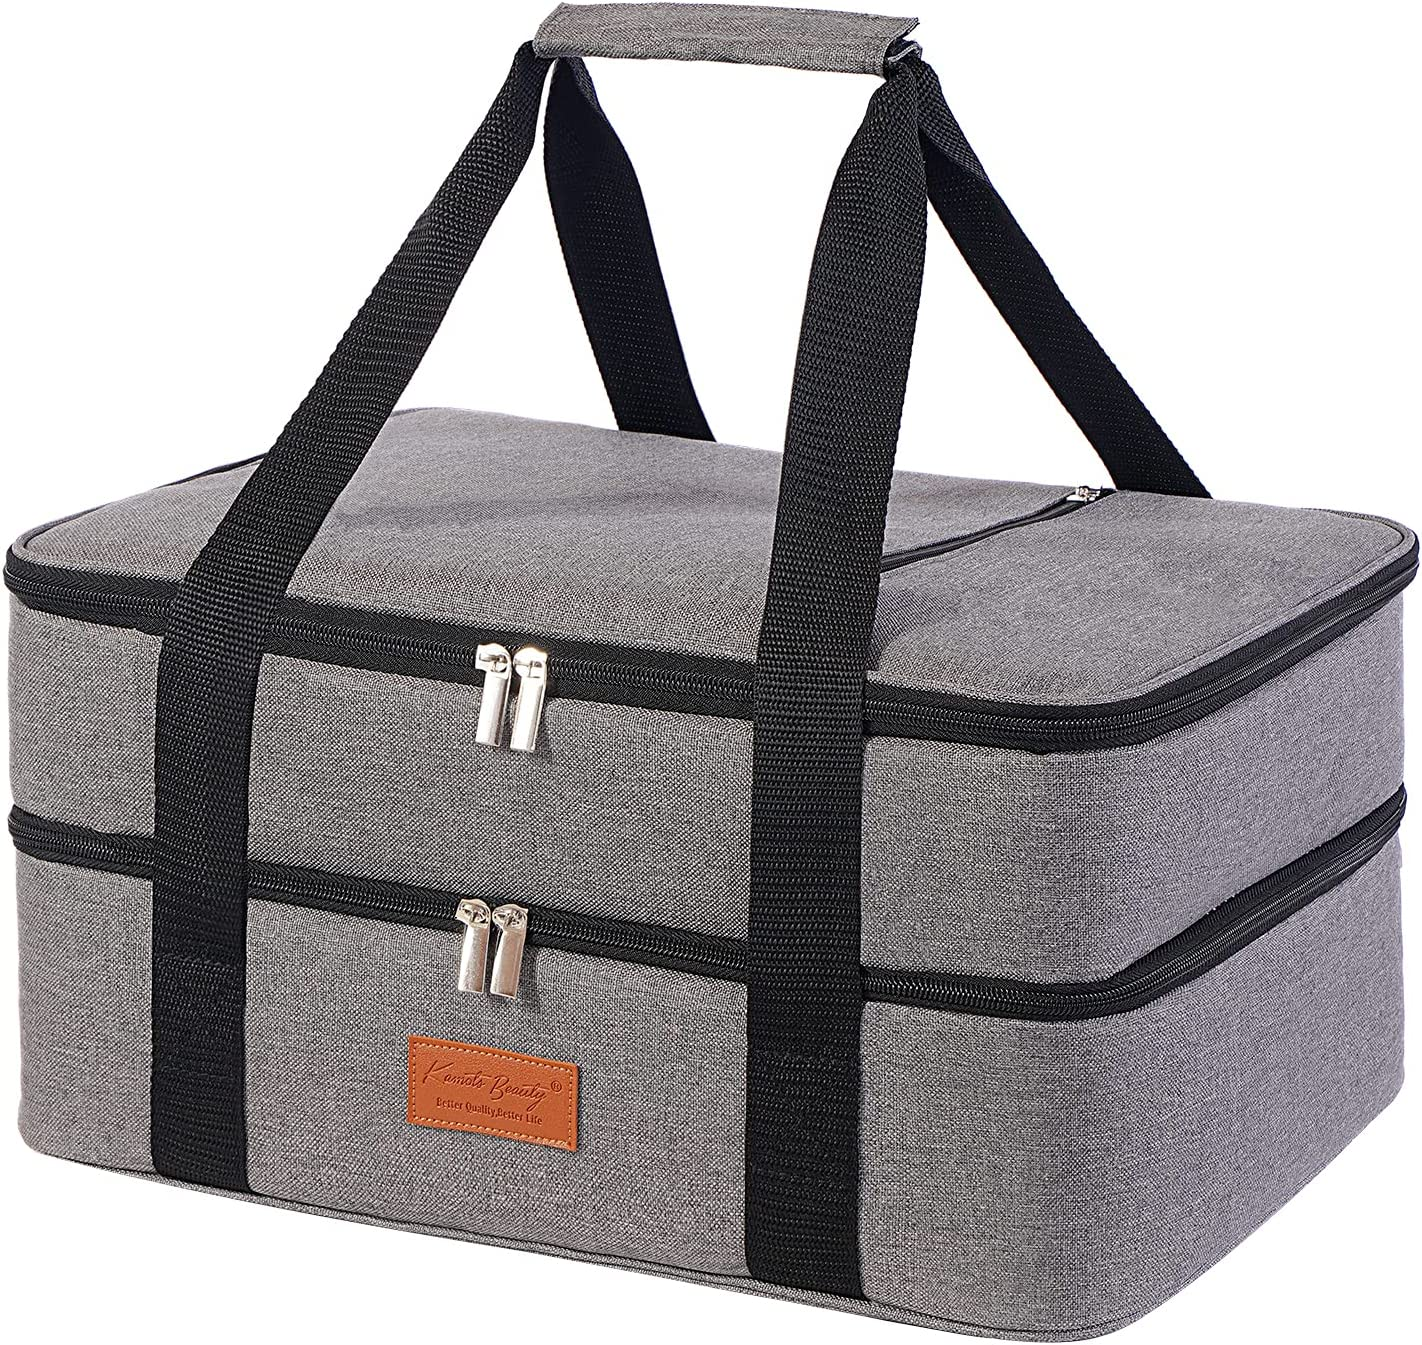 Lunch Bag Insulated Thermal Food Carrier Insulated Double Decker Casserole Carrier for Hot or Cold Food,Insulated Tote Bag for Potluck Cookouts/Picnic,Lasagna Holder,Fits 9